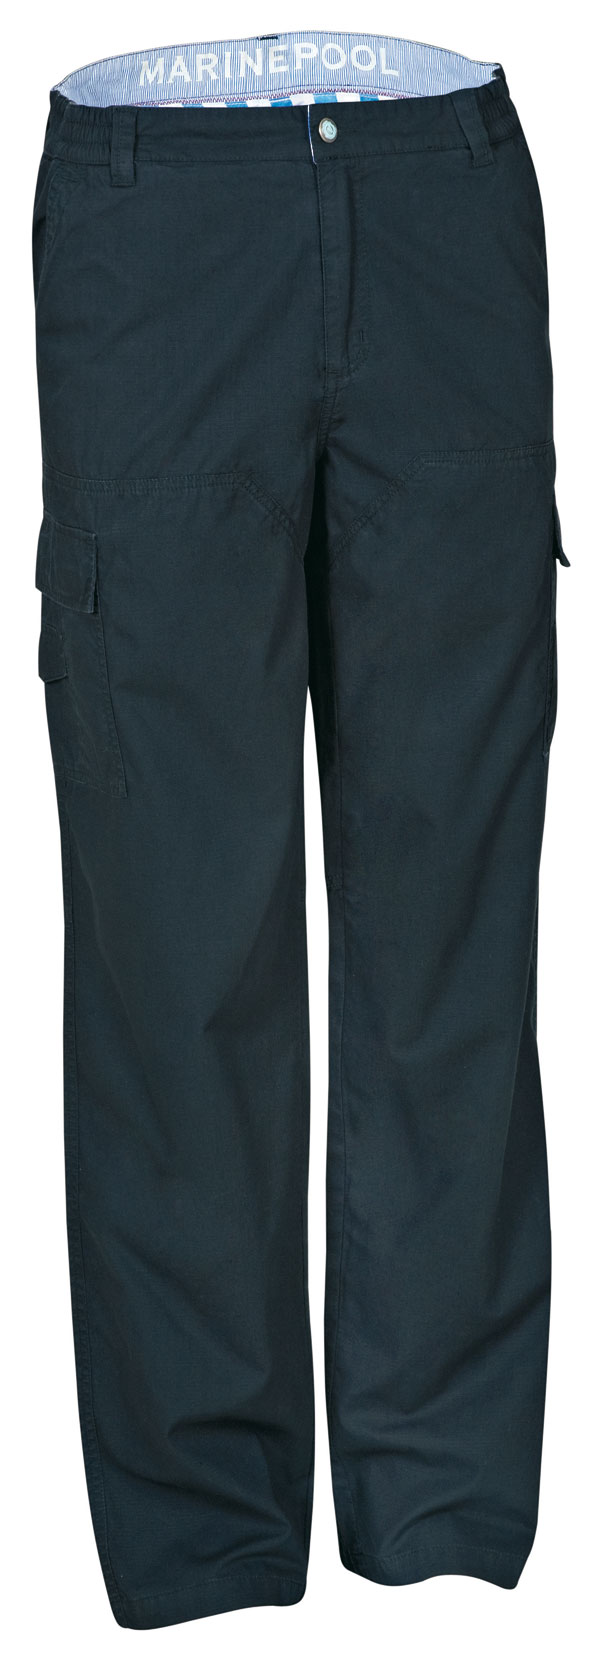 Bordhose Marinepool Schoner